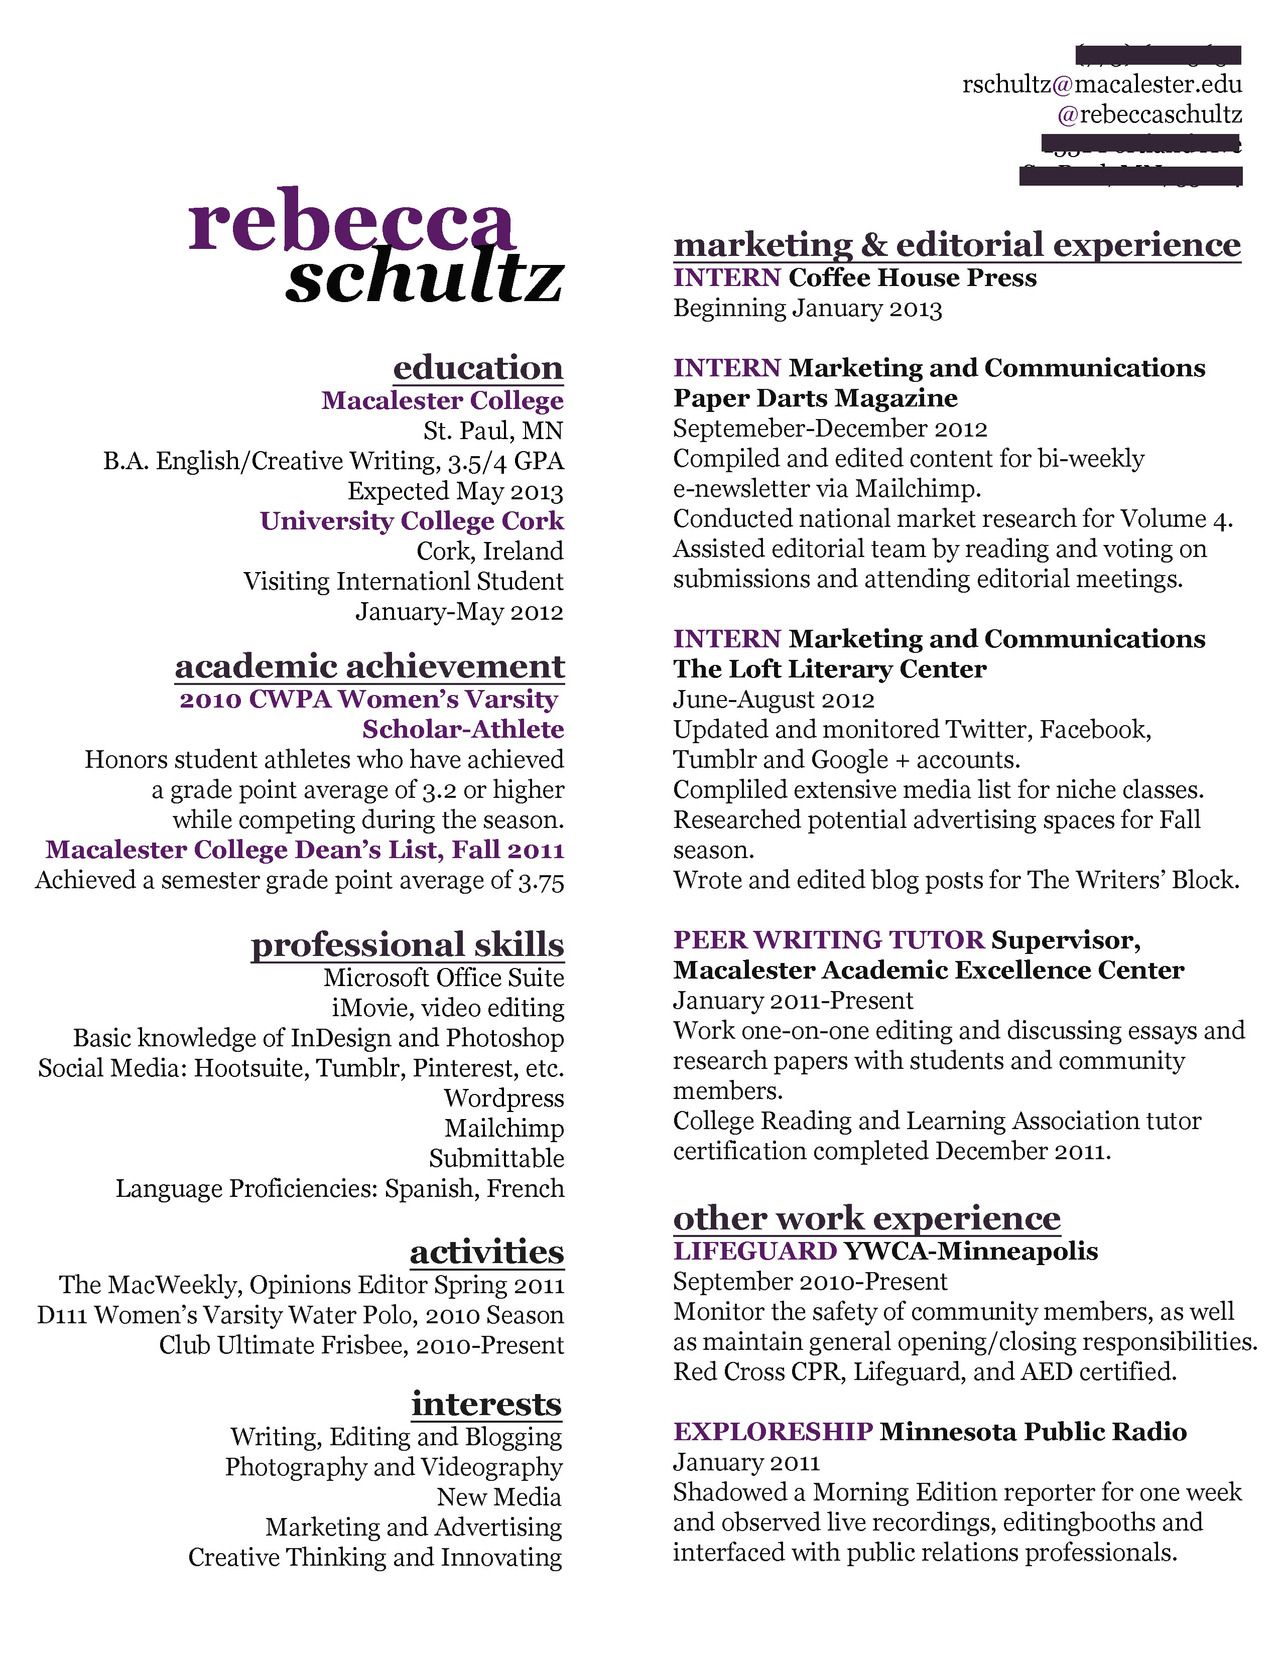 my resume  creative resume  writer resume  entry level resume  marketing resume  advertising